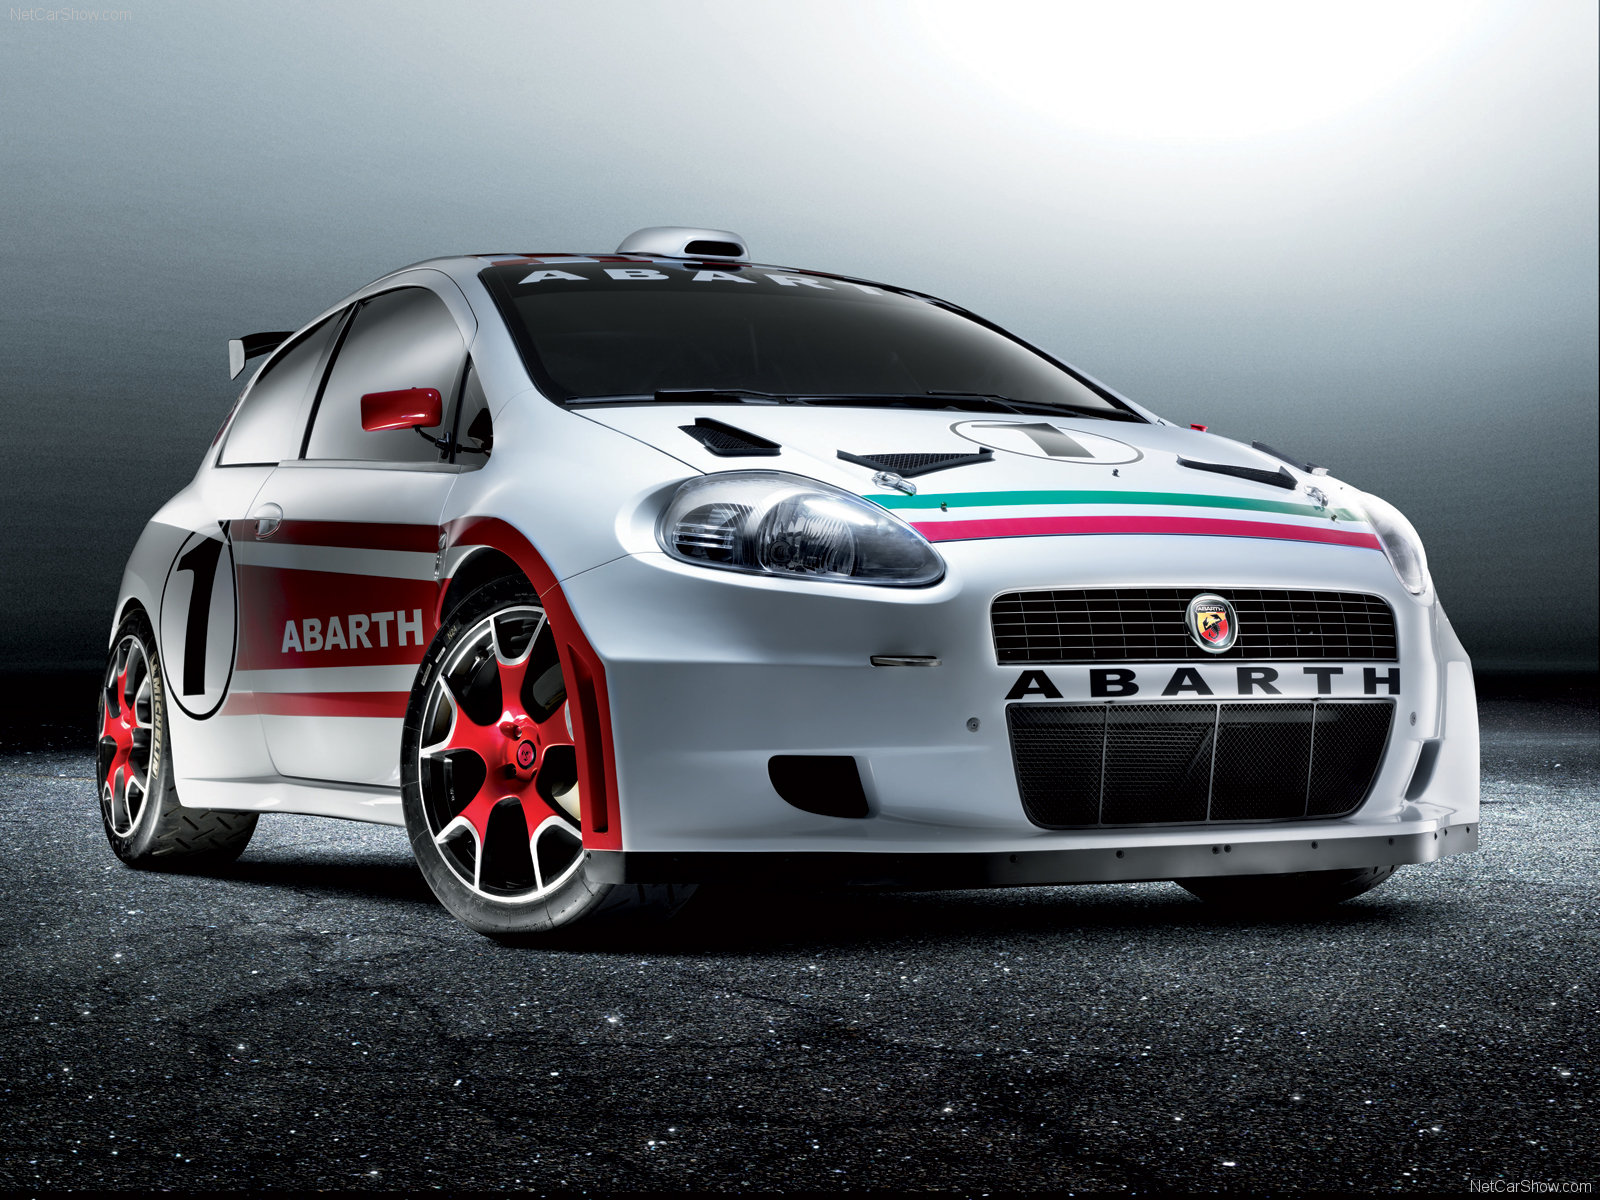 Abarth fiat photo - 4